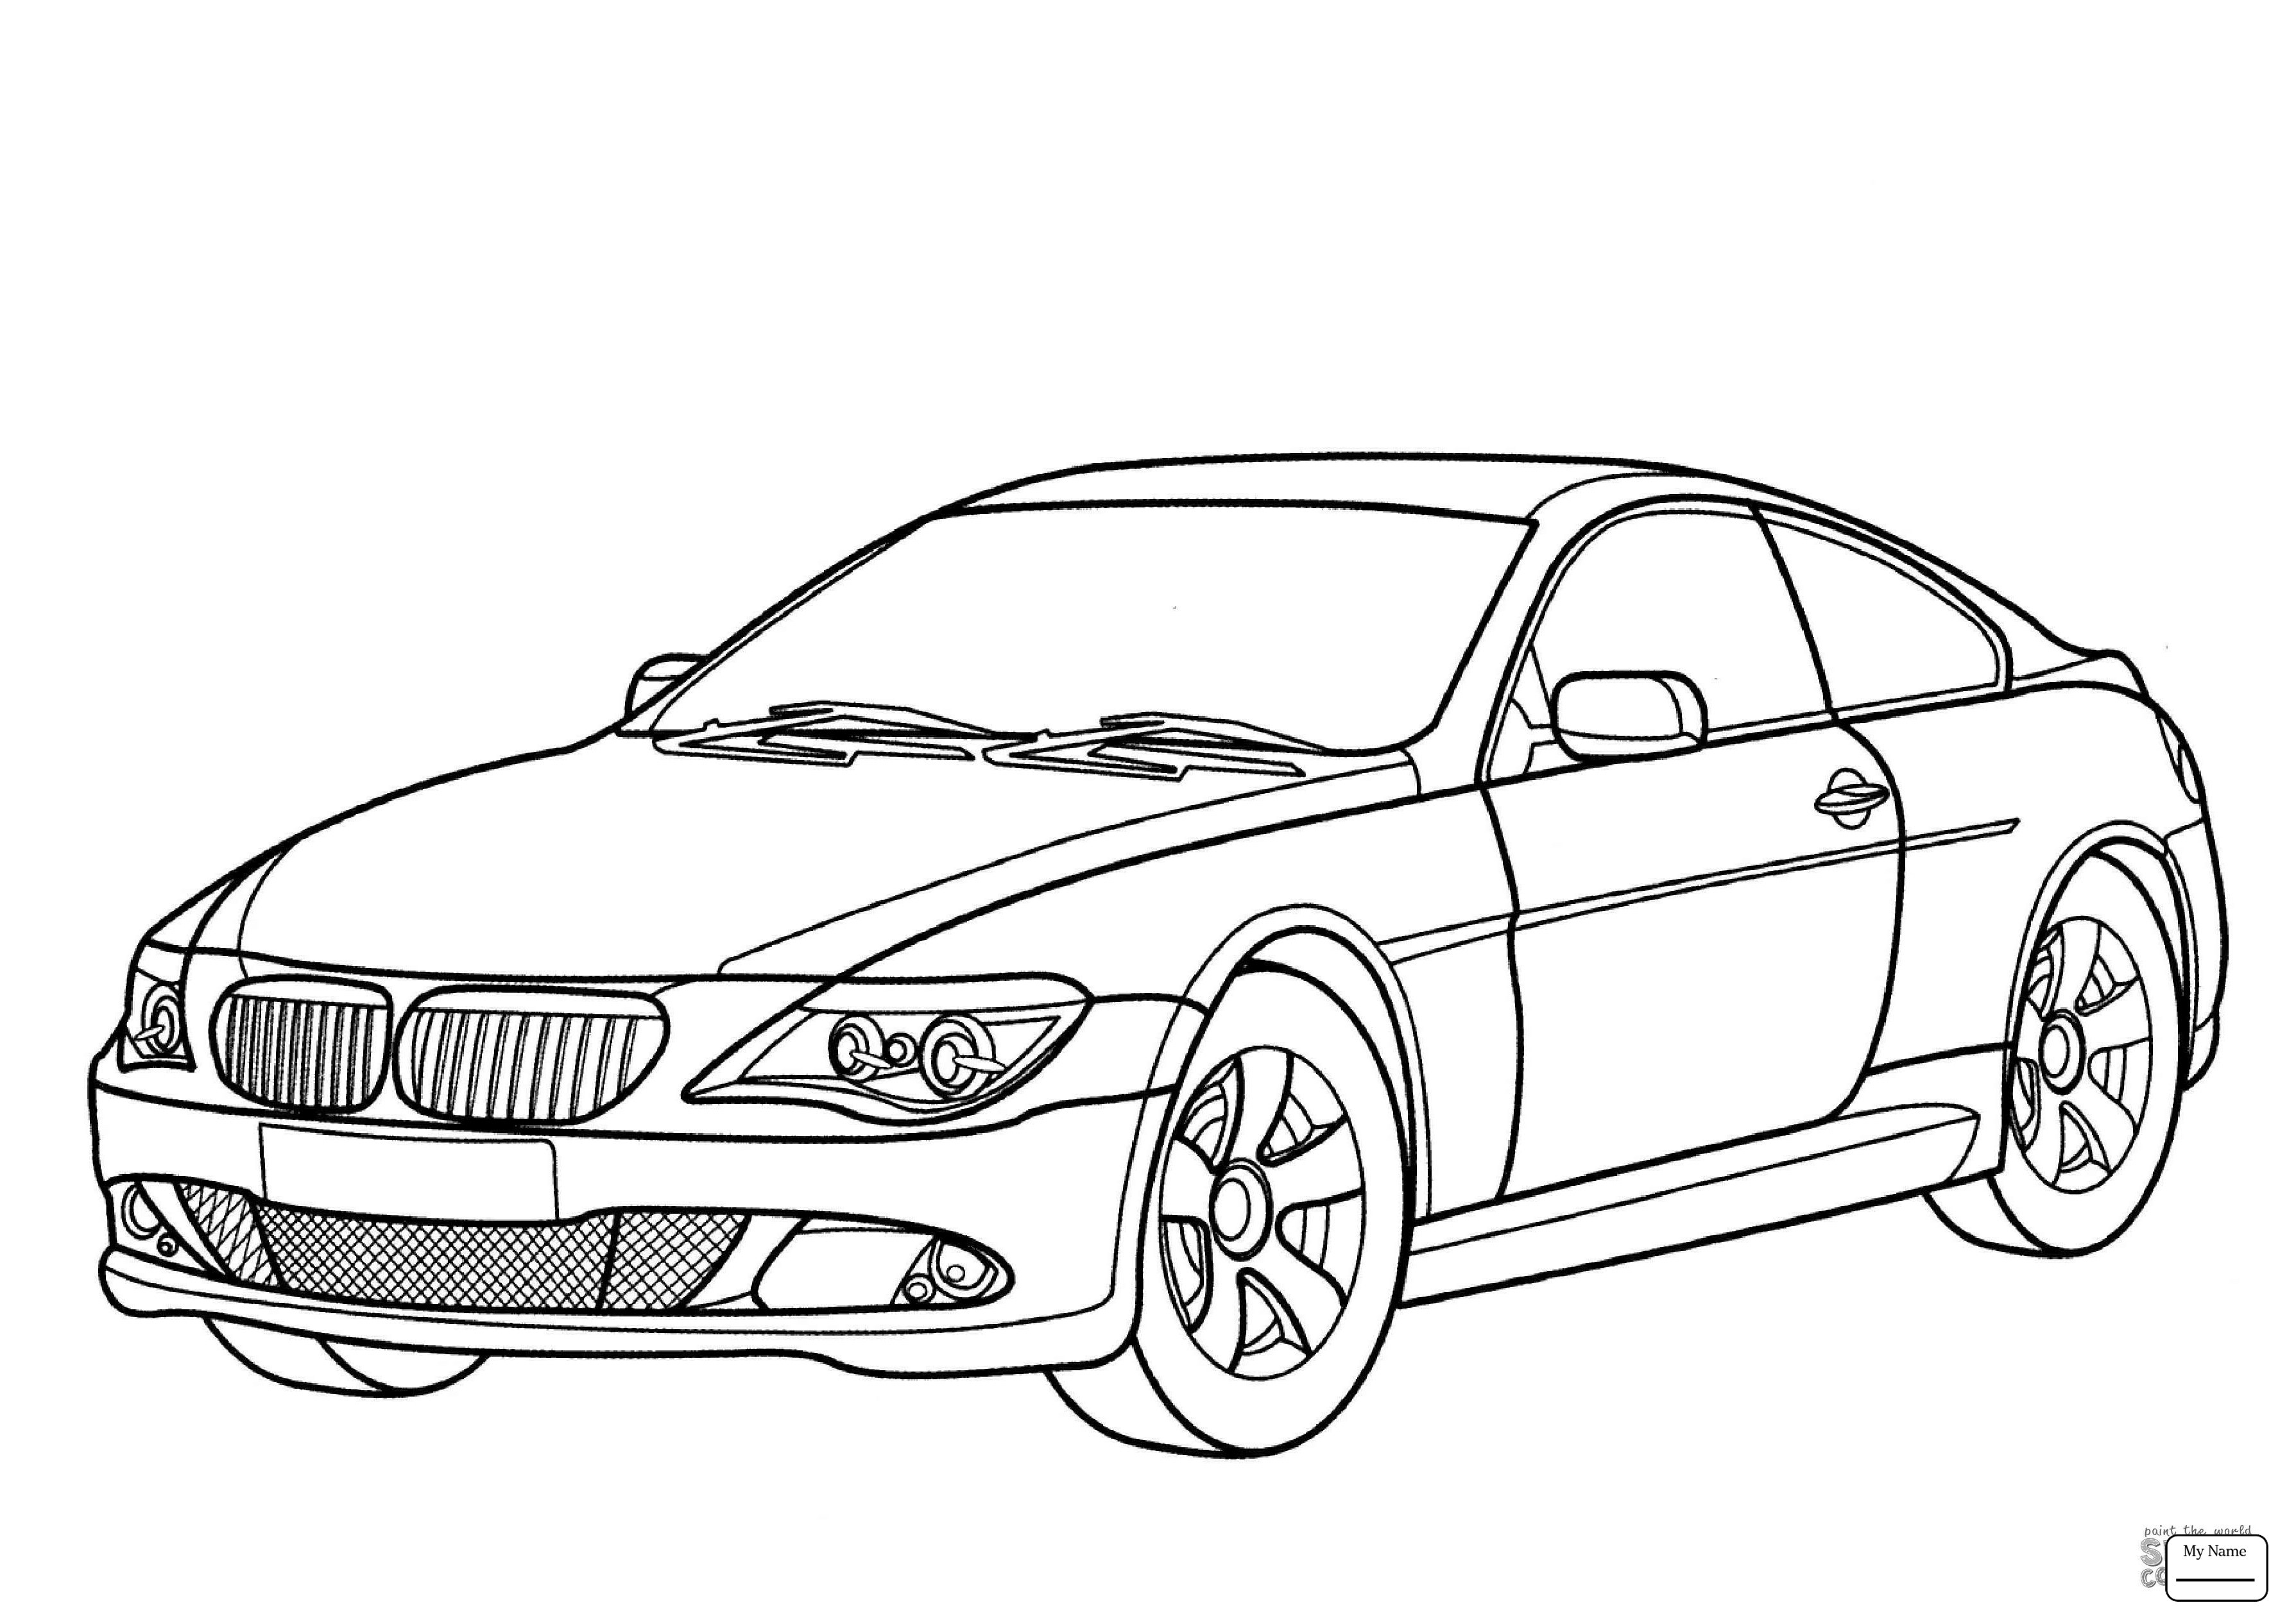 bmw m3 coloring pages bmw m3 coloring pages at getcoloringscom free printable bmw pages coloring m3